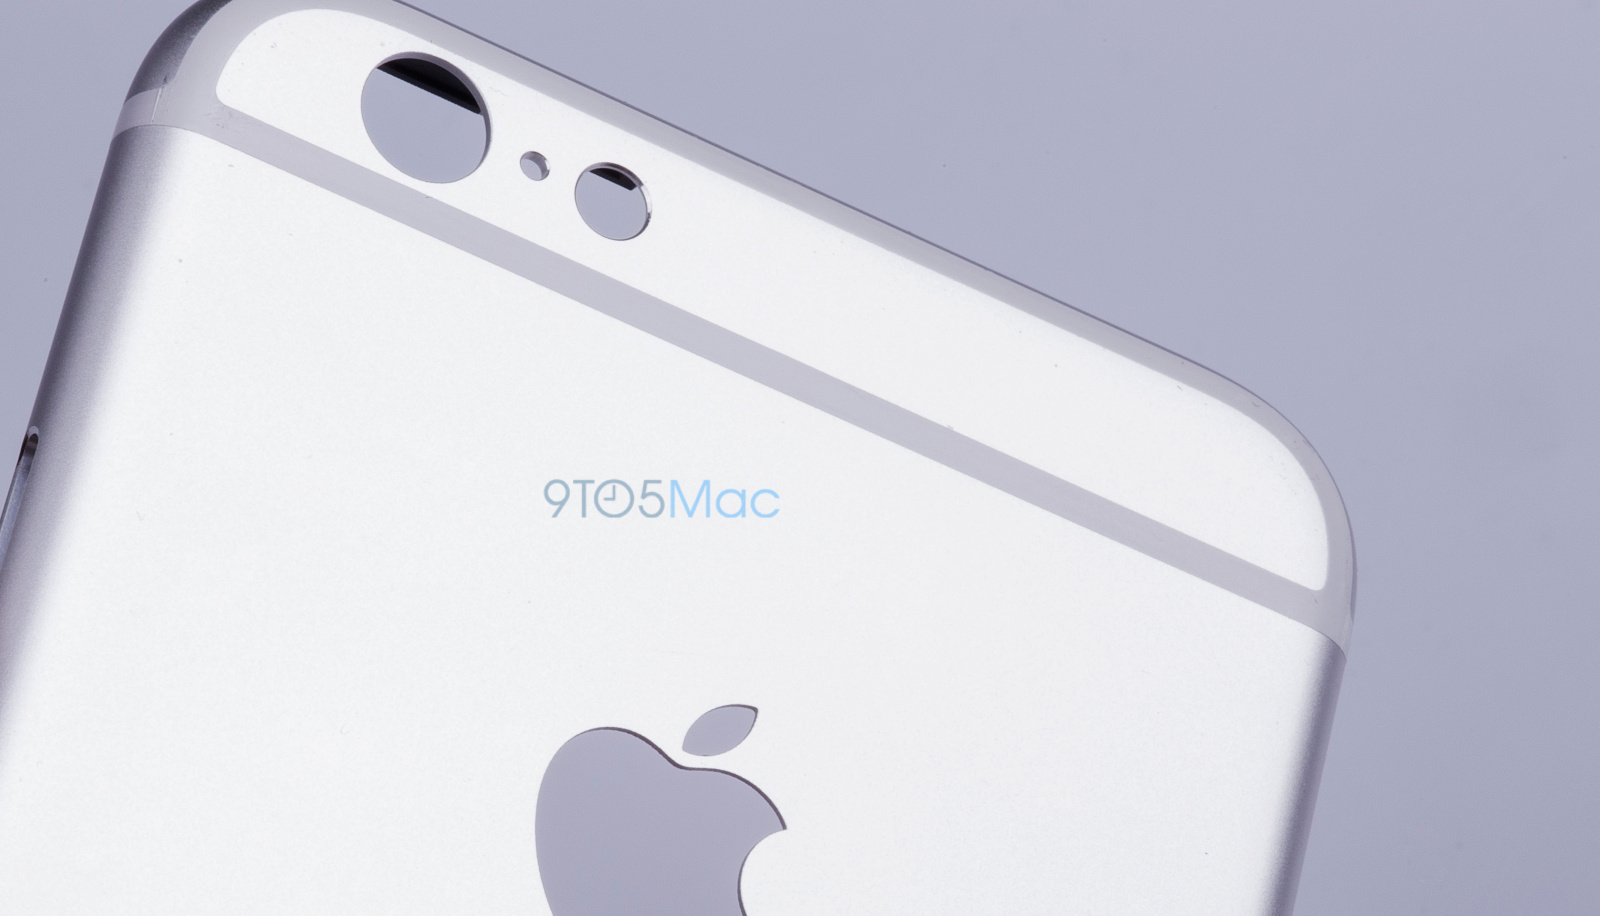 iPhone 6S camera 12 megapixel photos 4K video recording flash for 1600x916